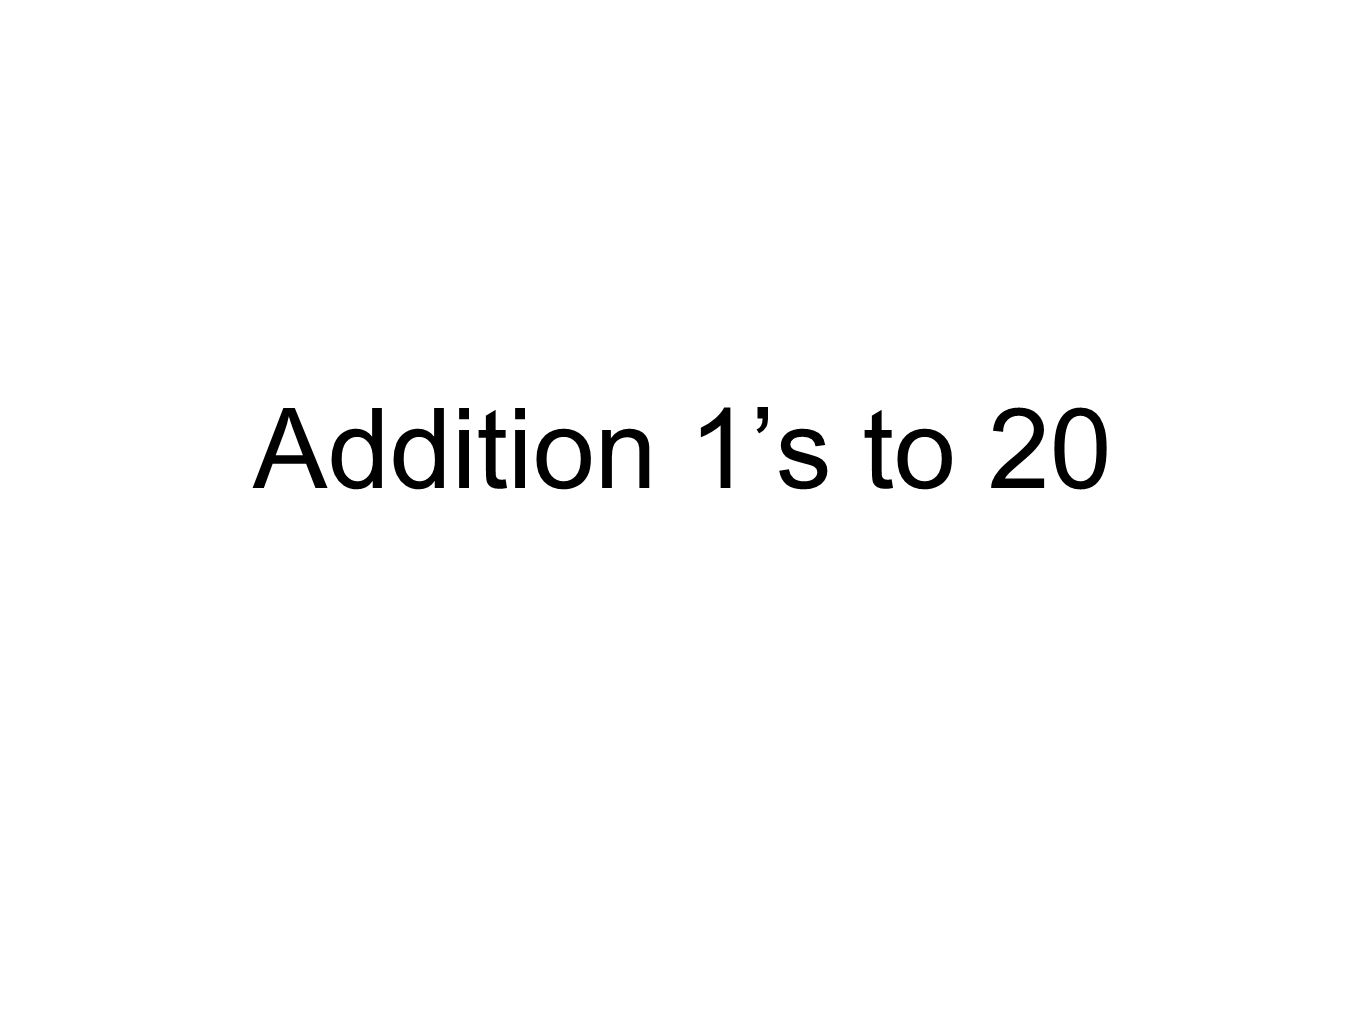 Addition 1's to 20